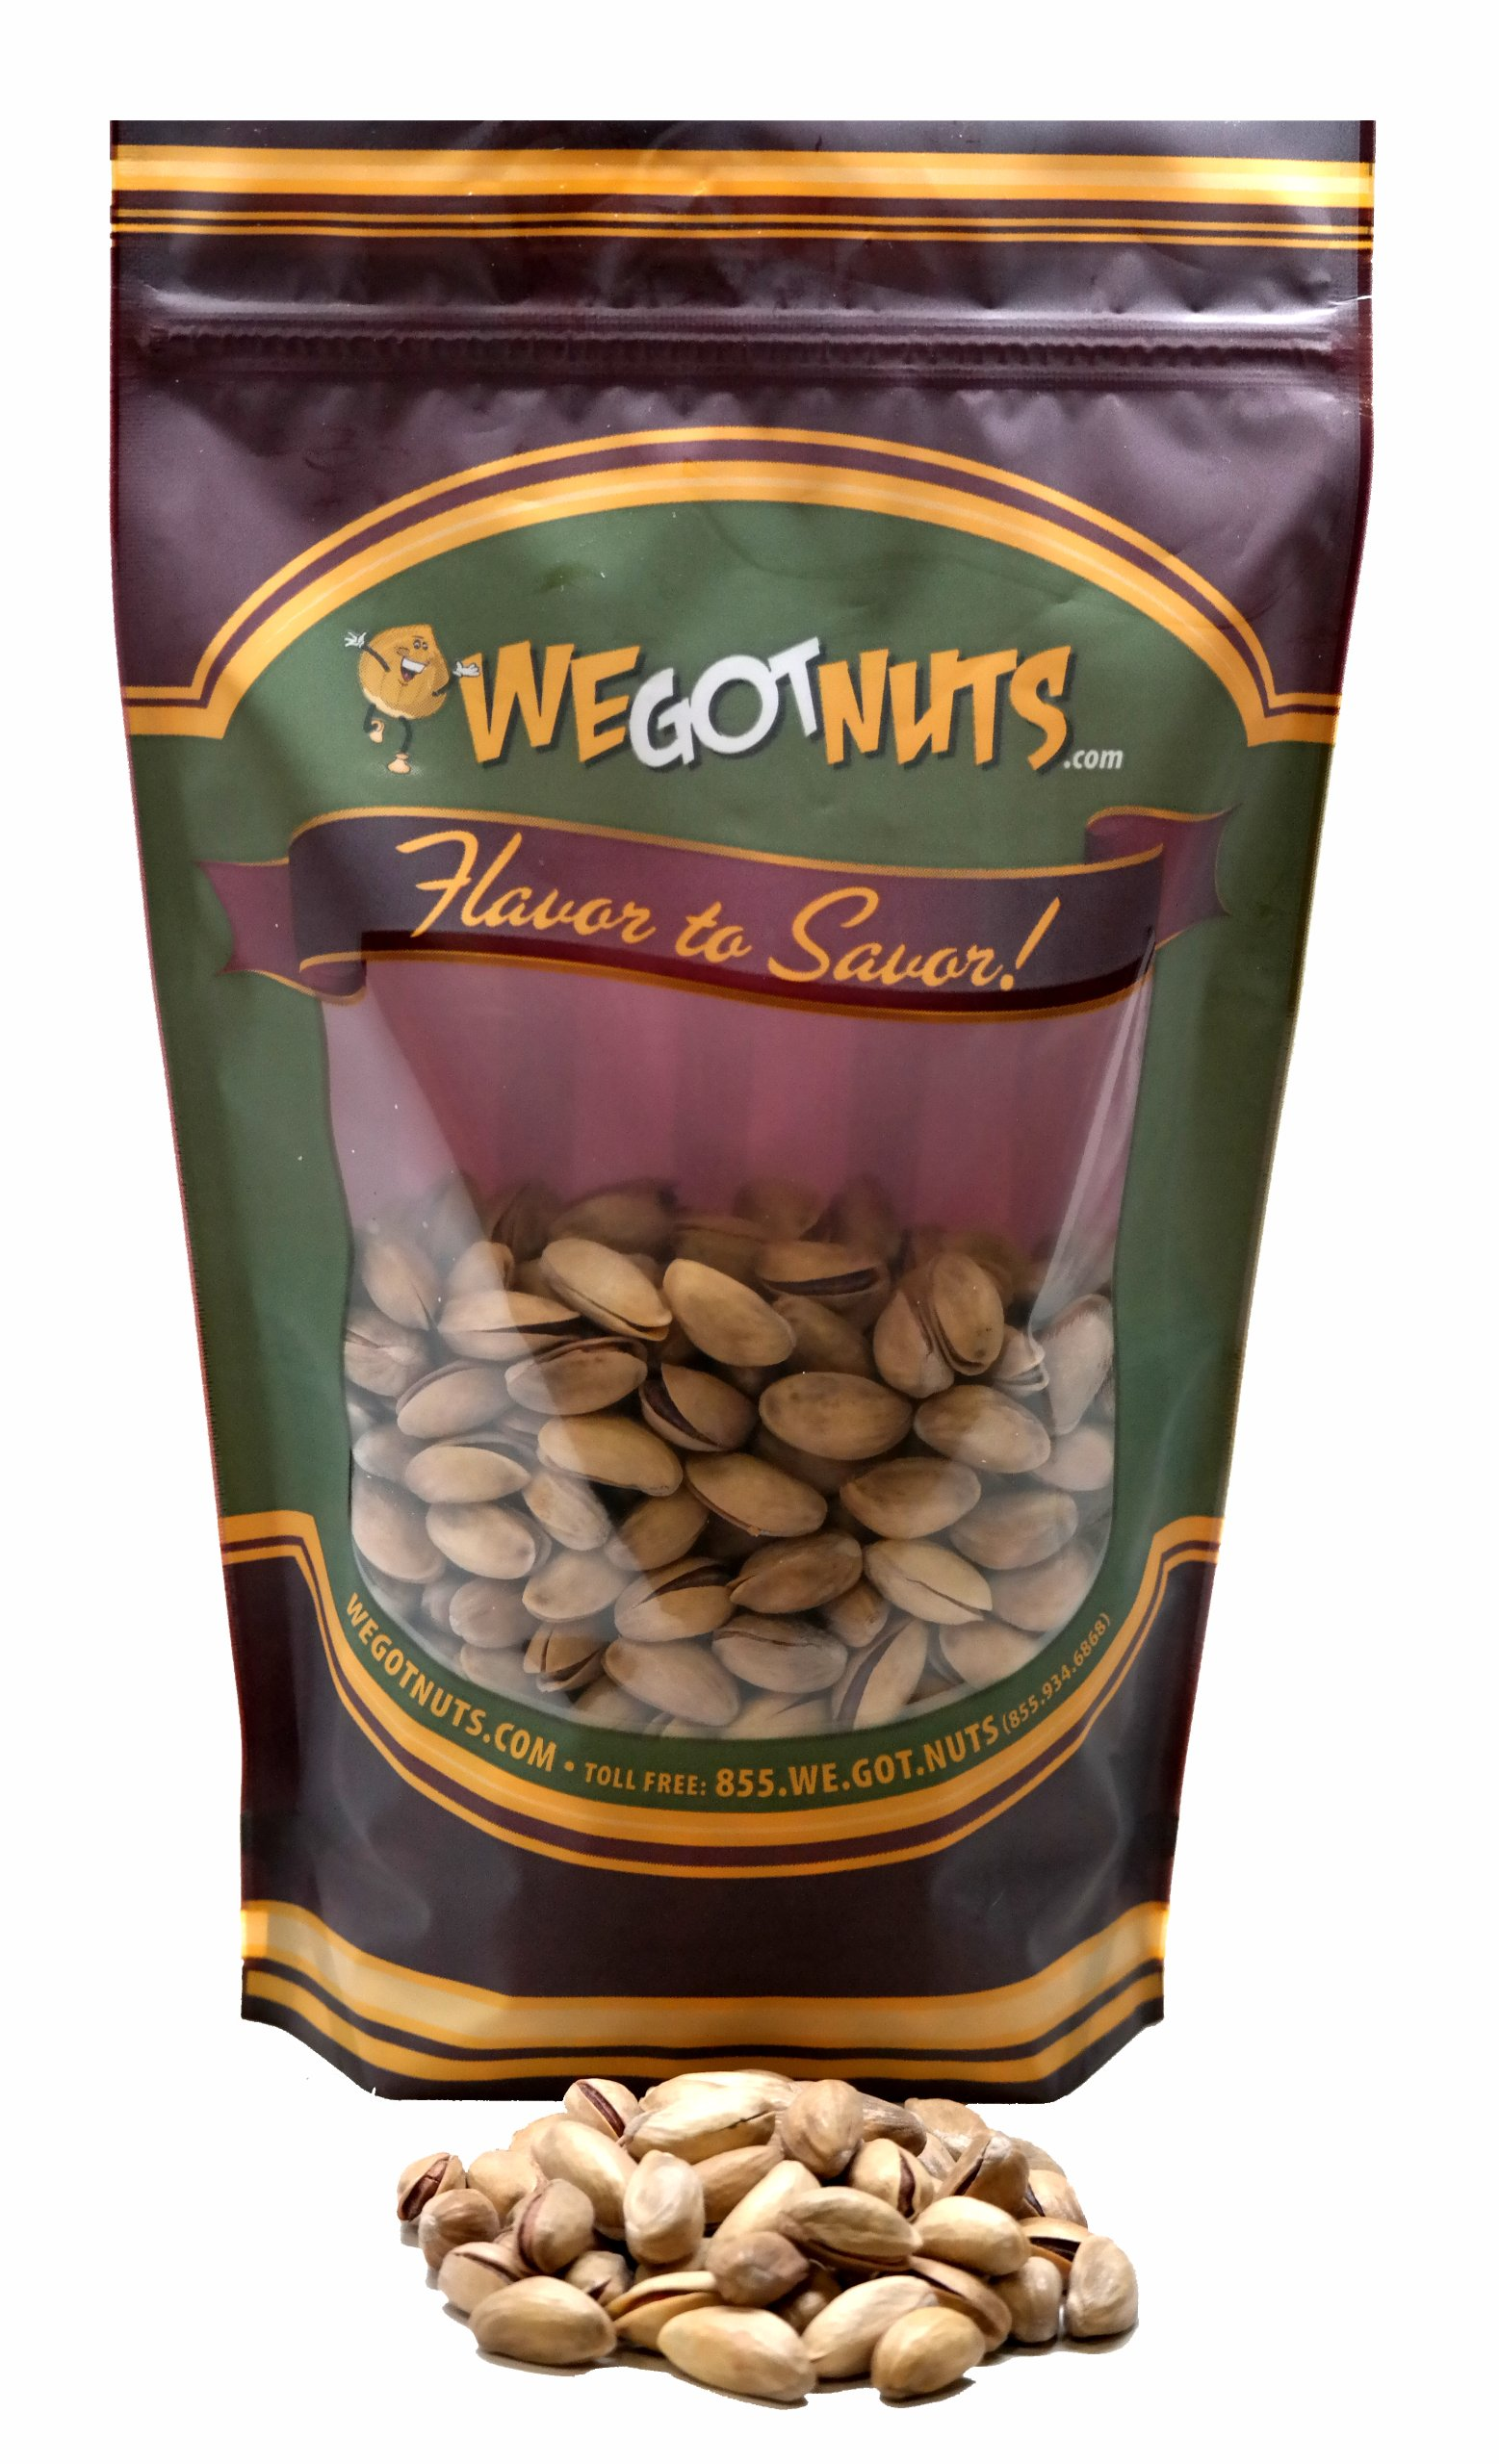 Turkish Pistachios Antep Roasted Salted , In Shell - We Got Nuts (10 LBS.) by We Got Nuts